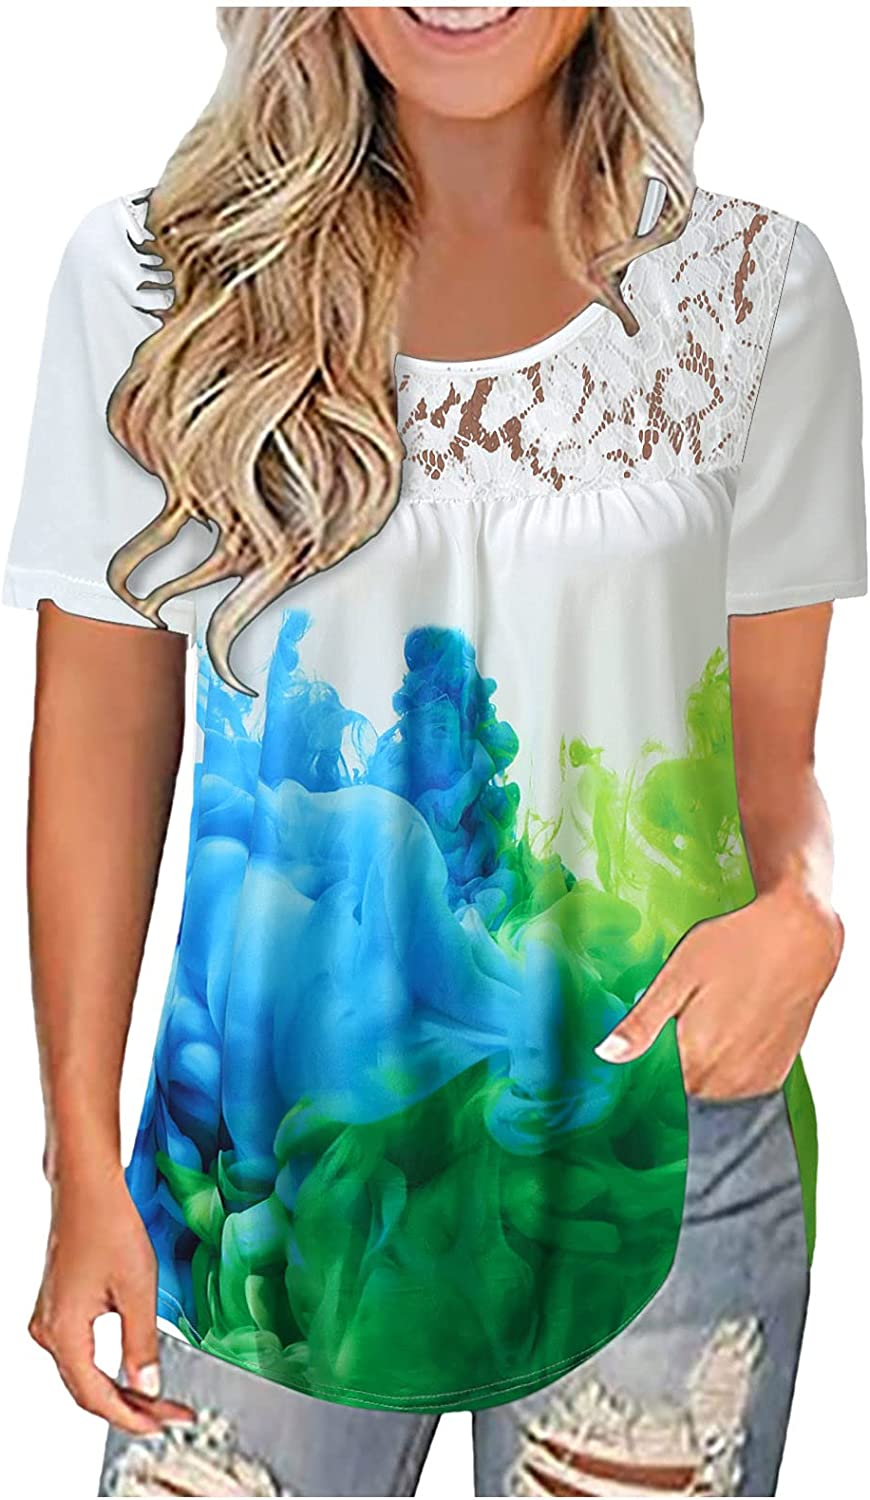 Short Sleeve Shirts for Women Round Neck Loose Pullover Comfy Soft Blouses Summer Casual Print Tops Tunics